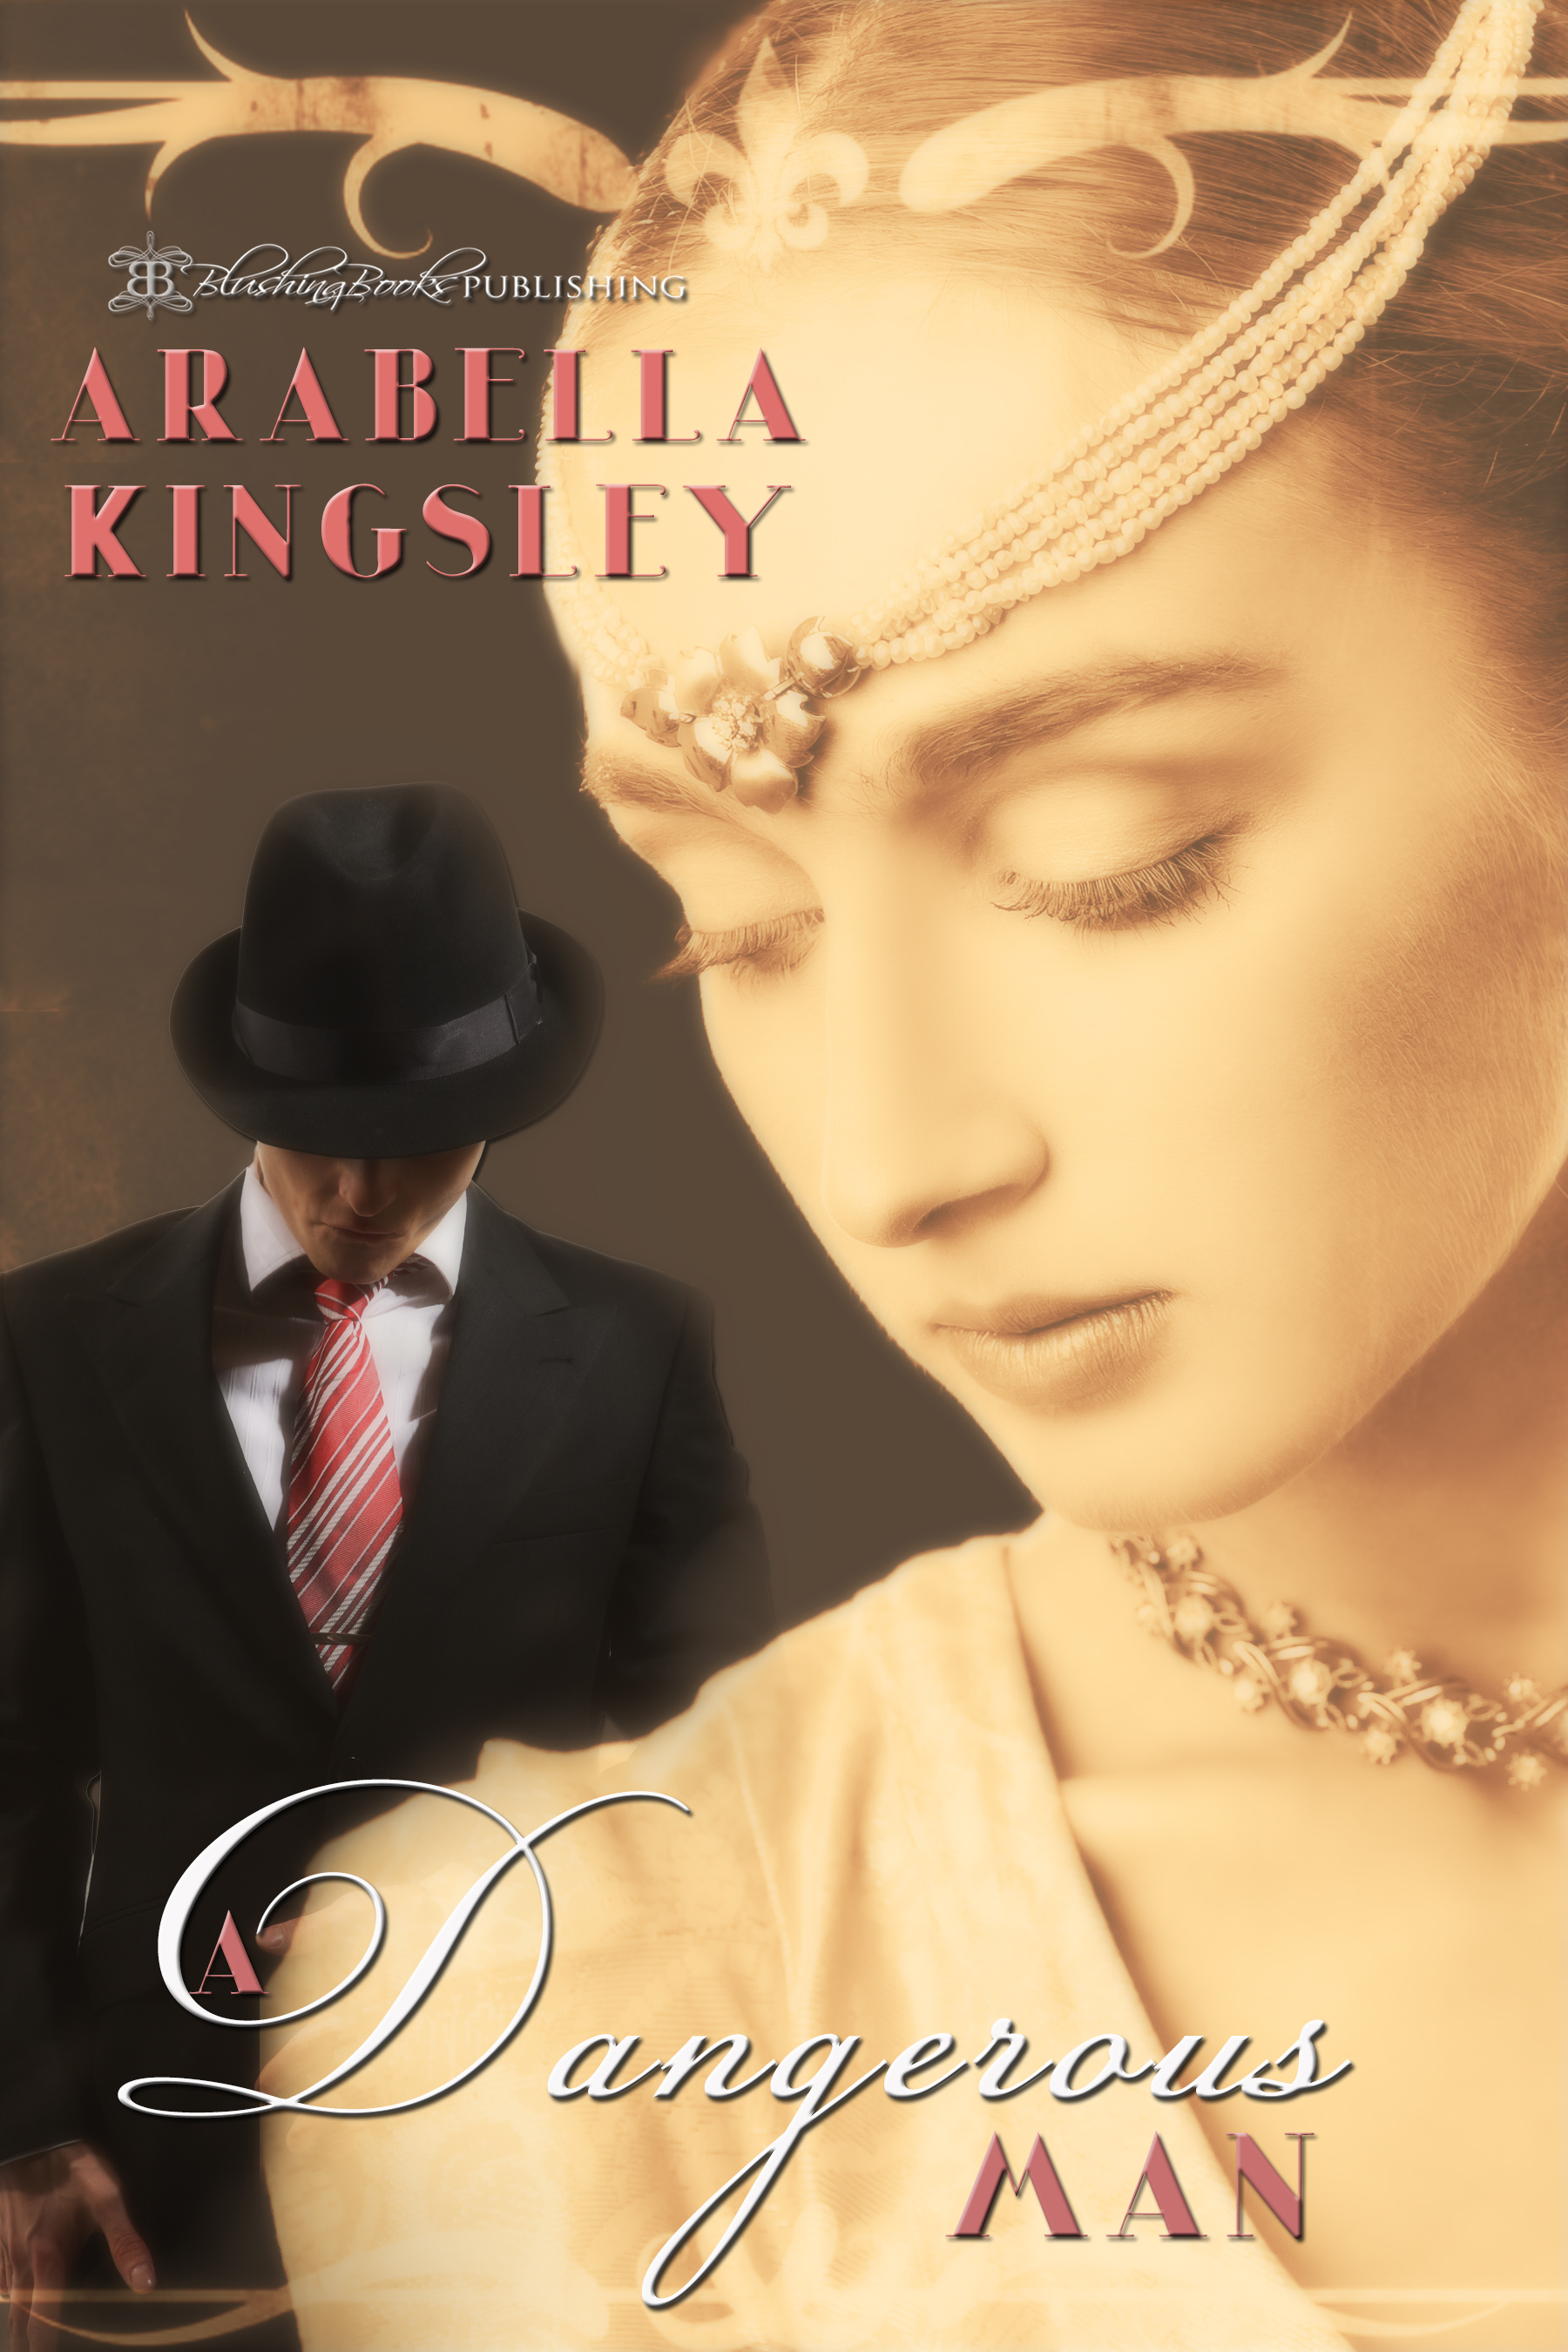 Arabella Kingsley - A Dangerous Man